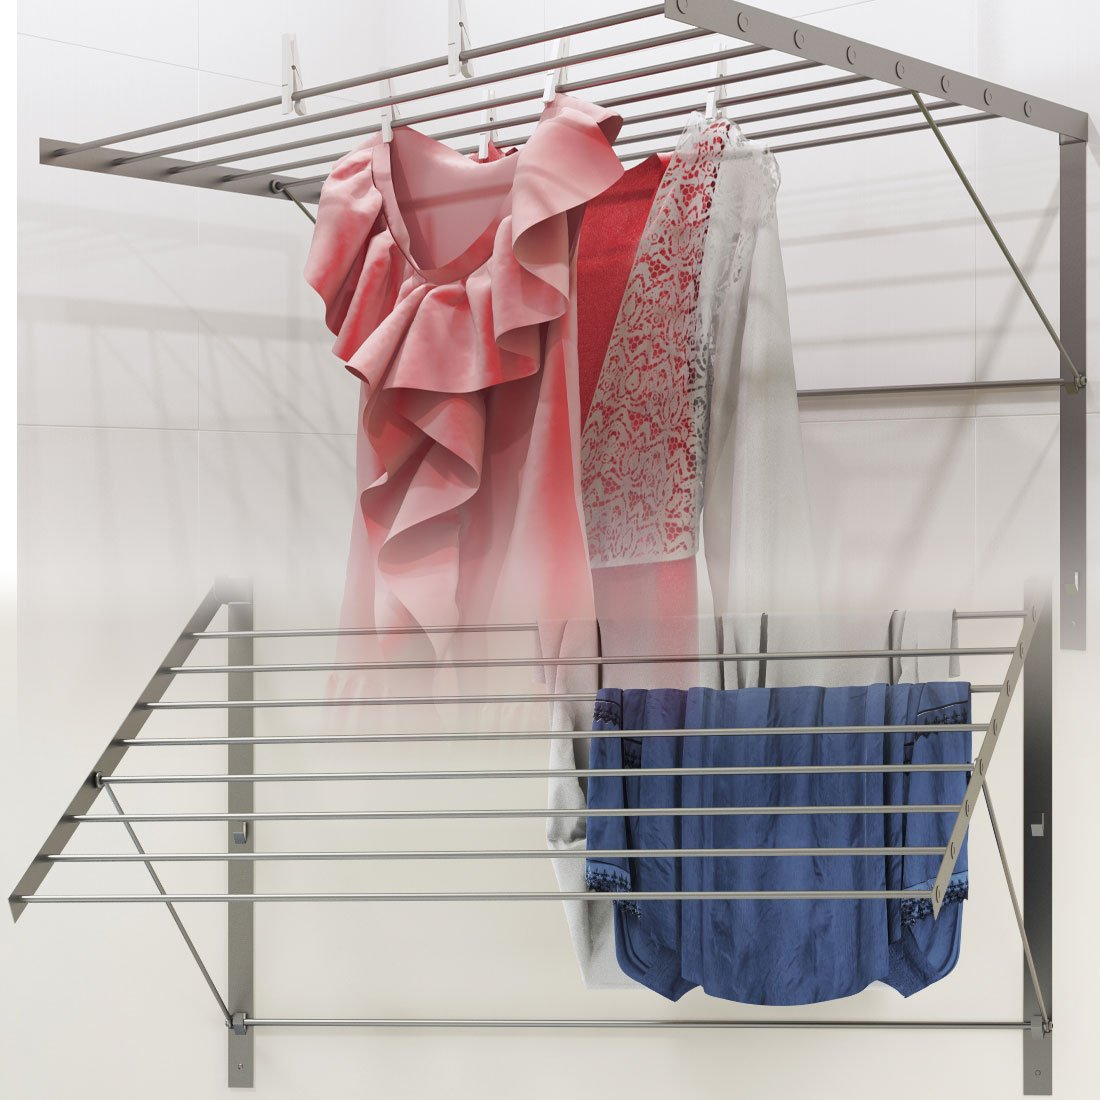 wall dryer clothes drying interior mount laundry rack decorating mounted room